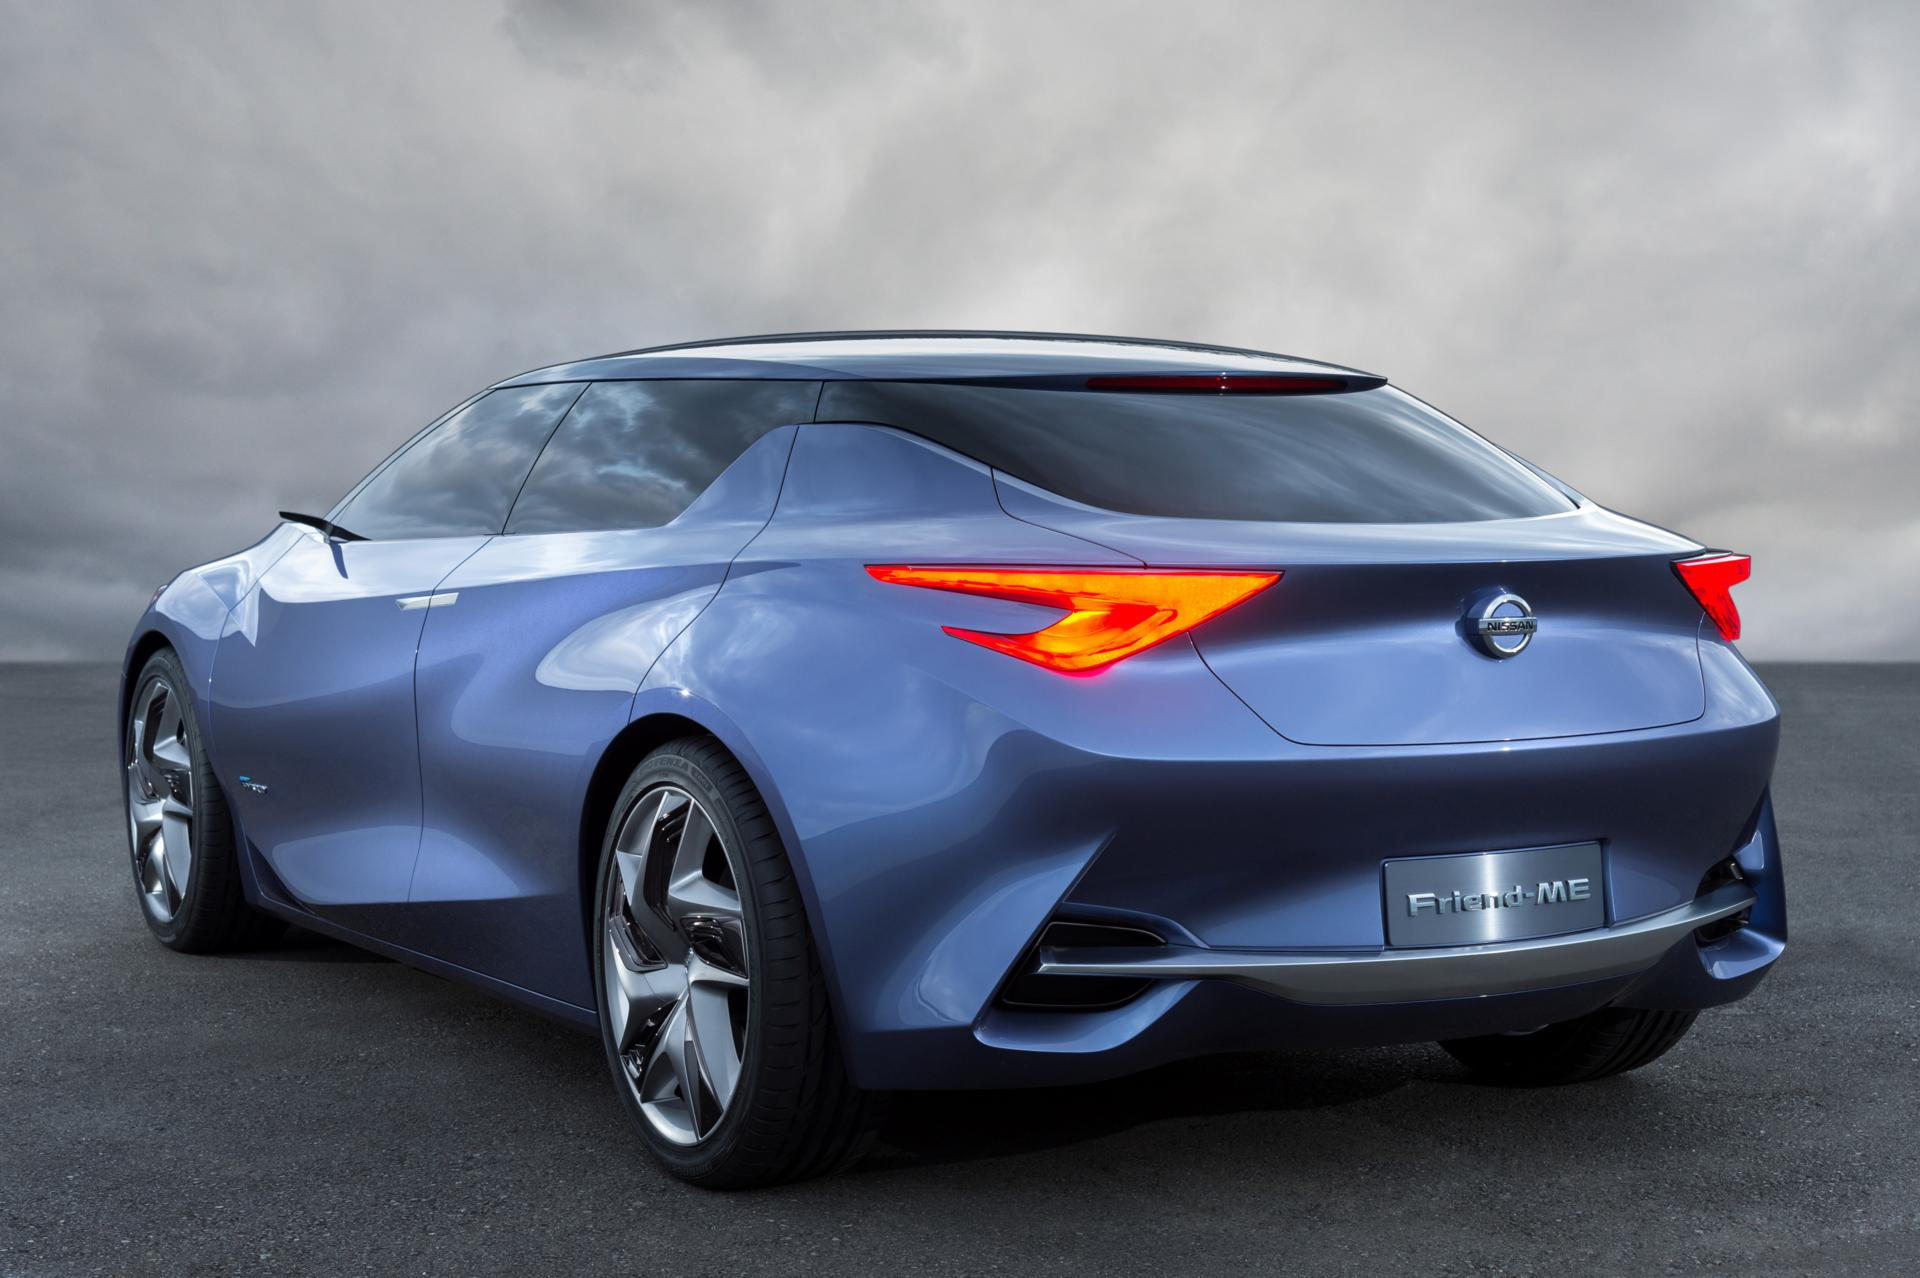 Images: Nissan Friend-Me Concept Car 2013